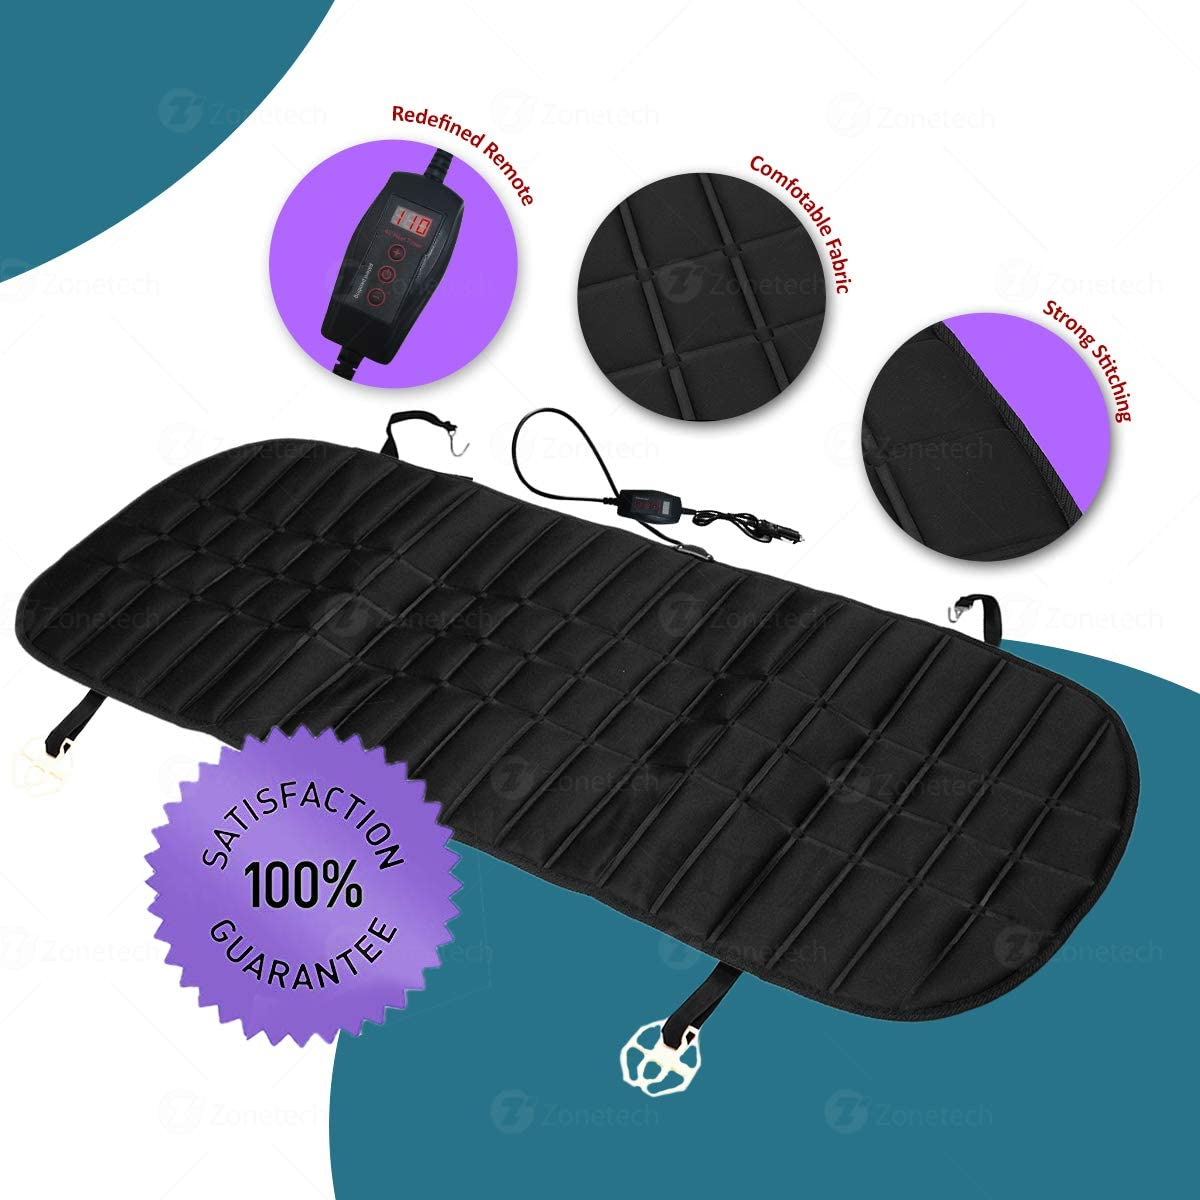 Black Premium Quality 12V Heating Warmer Rear Pad Hot Cover Perfect for Cold Weather and Winter Driving Heating Pad for Car DesirePath Heated Rear Seat Cushion